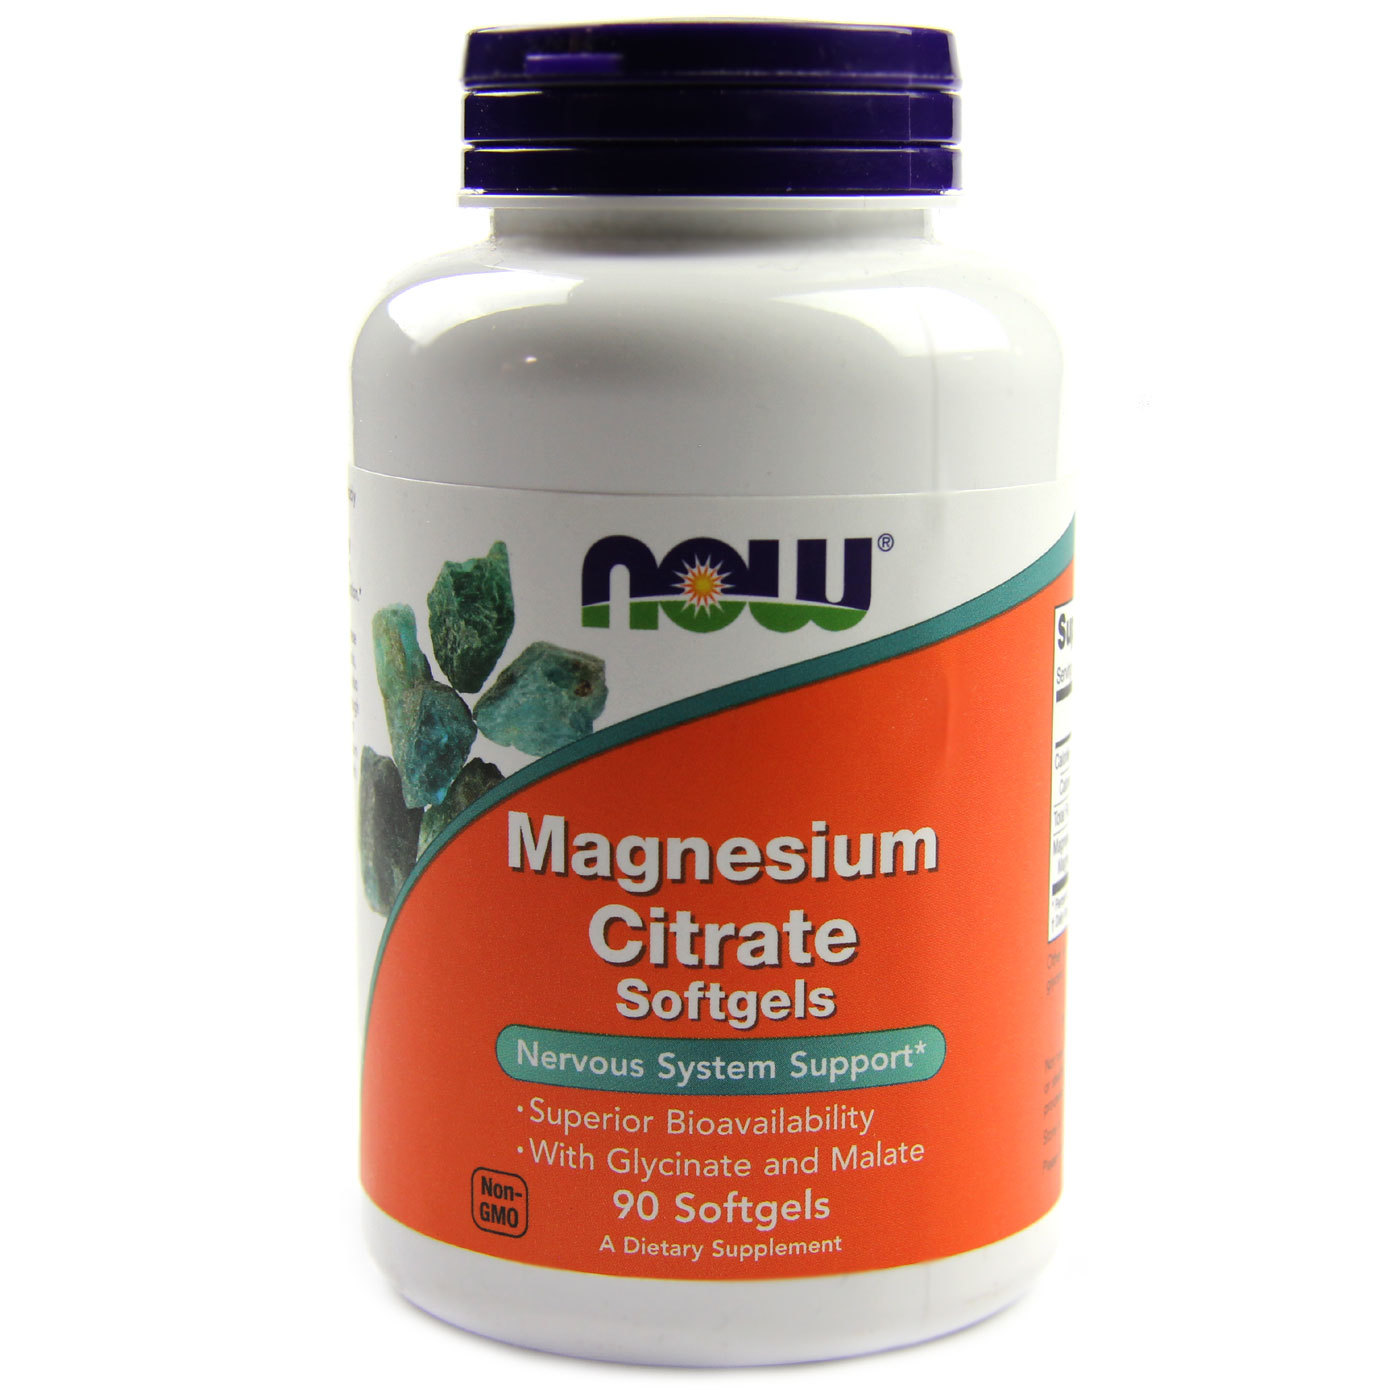 magnesium citrate Magnesium citrate (citrate of magnesia, citroma) is an otc medicine that retains water in the intestines to relieve constipation a magnesium citrate supplement is used for treating heartburn.